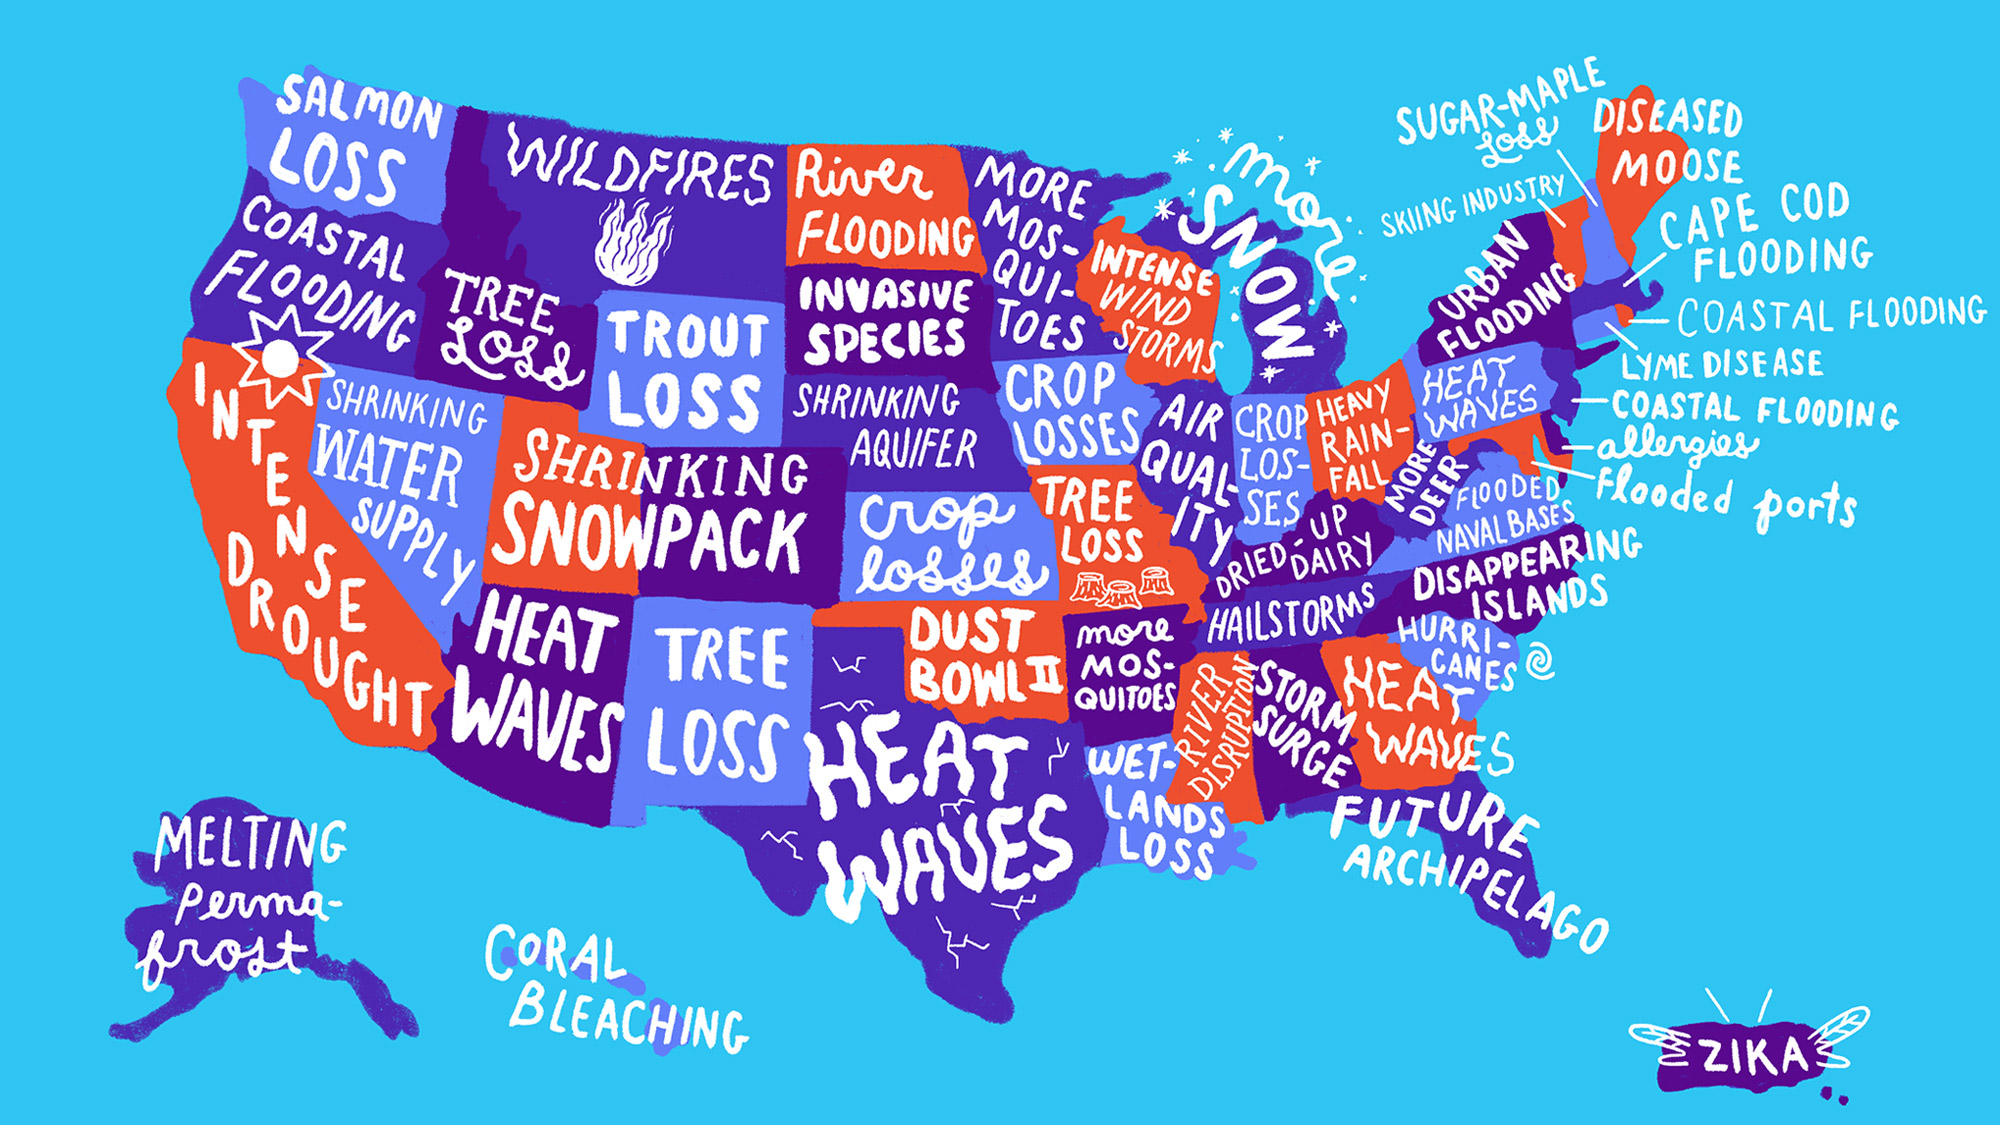 USA climate concerns by state